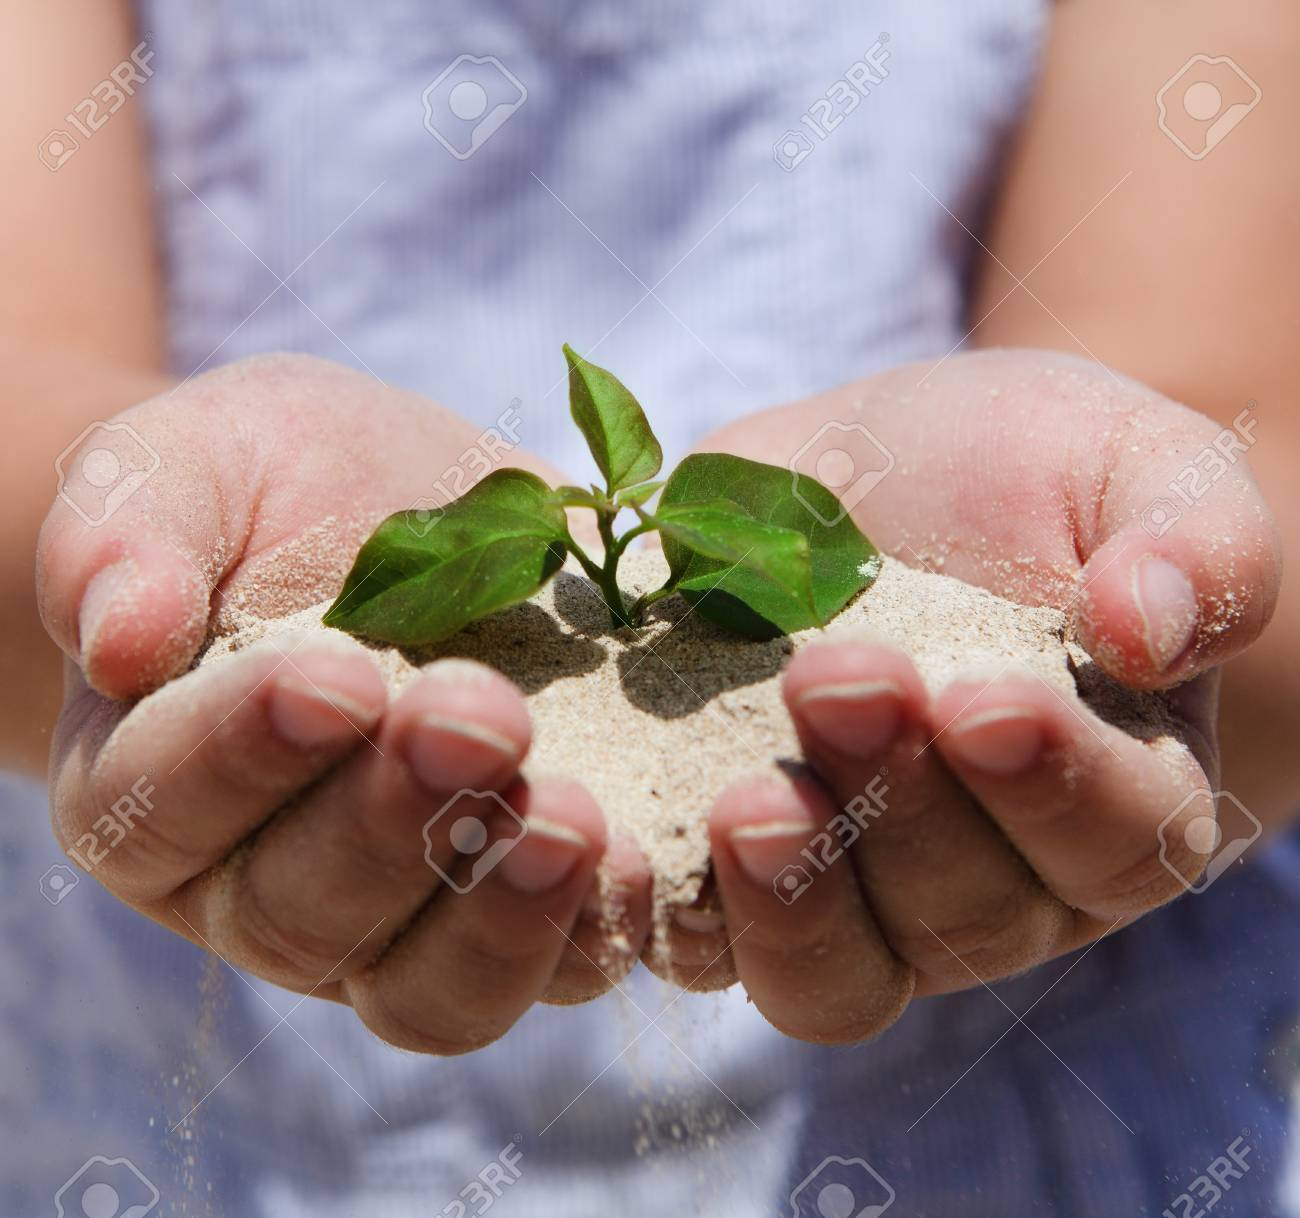 Little girl holding young plant in her hands Stock Photo - 13290794